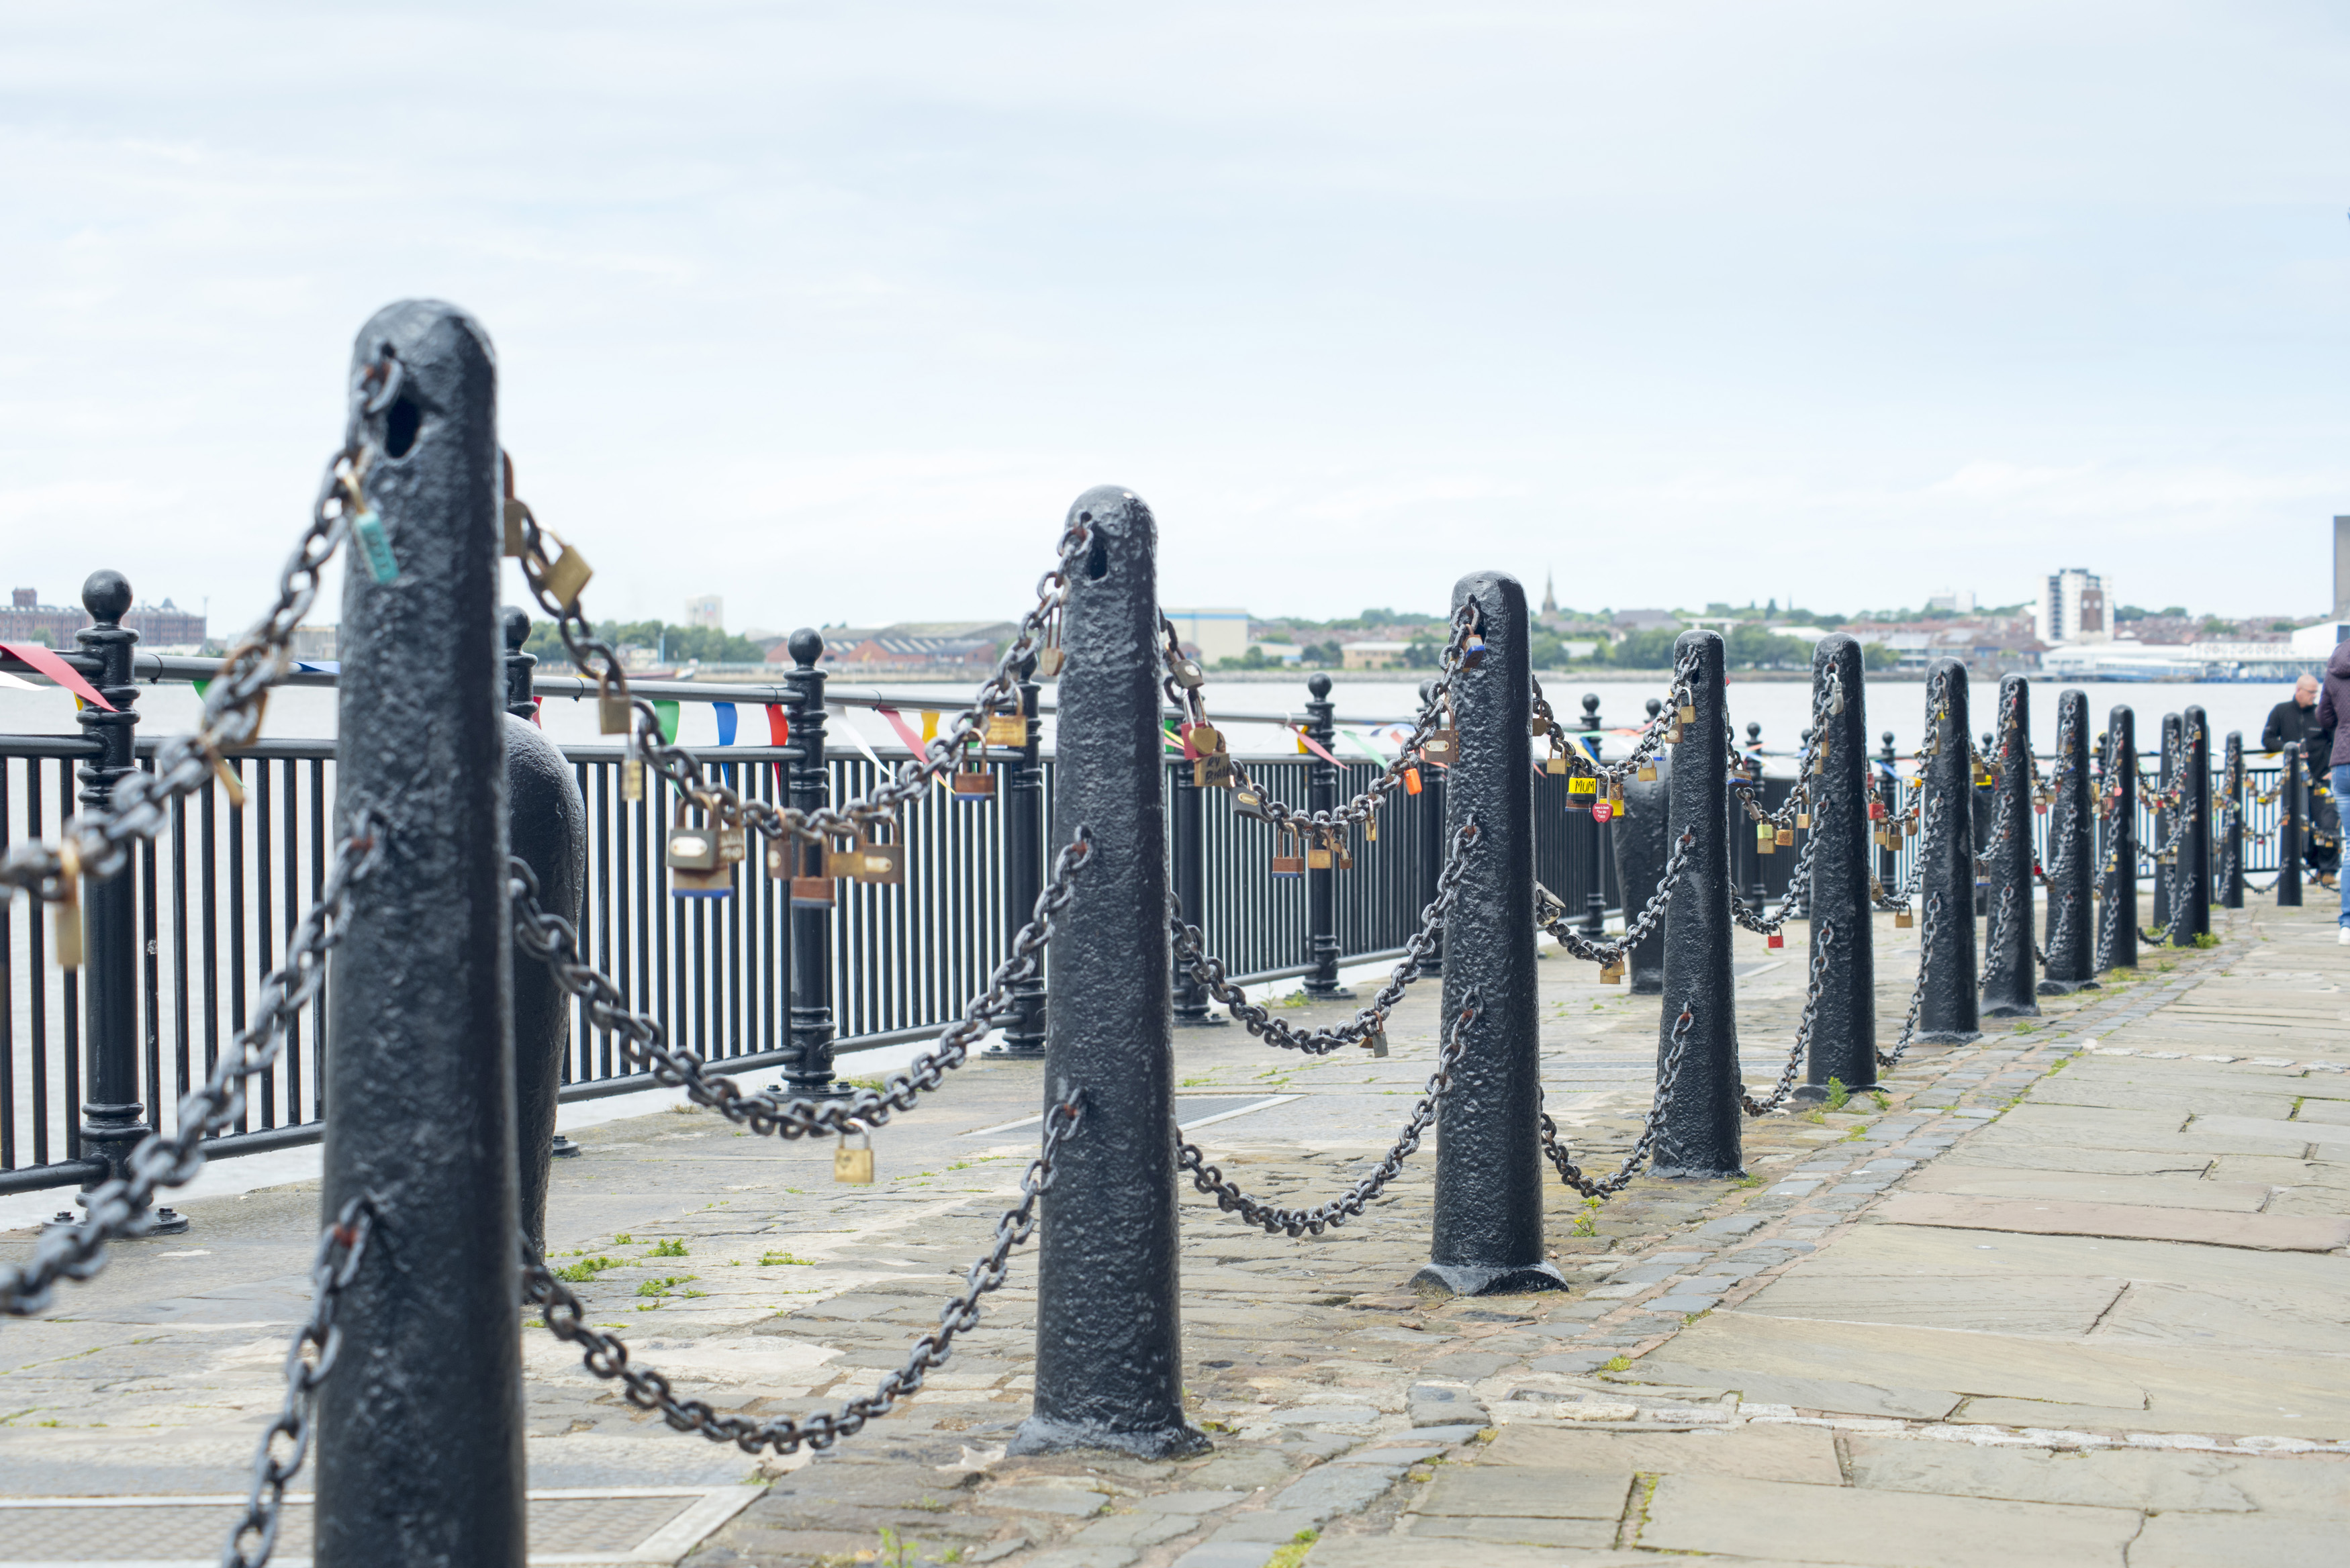 Various padlocks on iron chains at waterfront at Liverpool Mersey waterfront in the United Kingdom